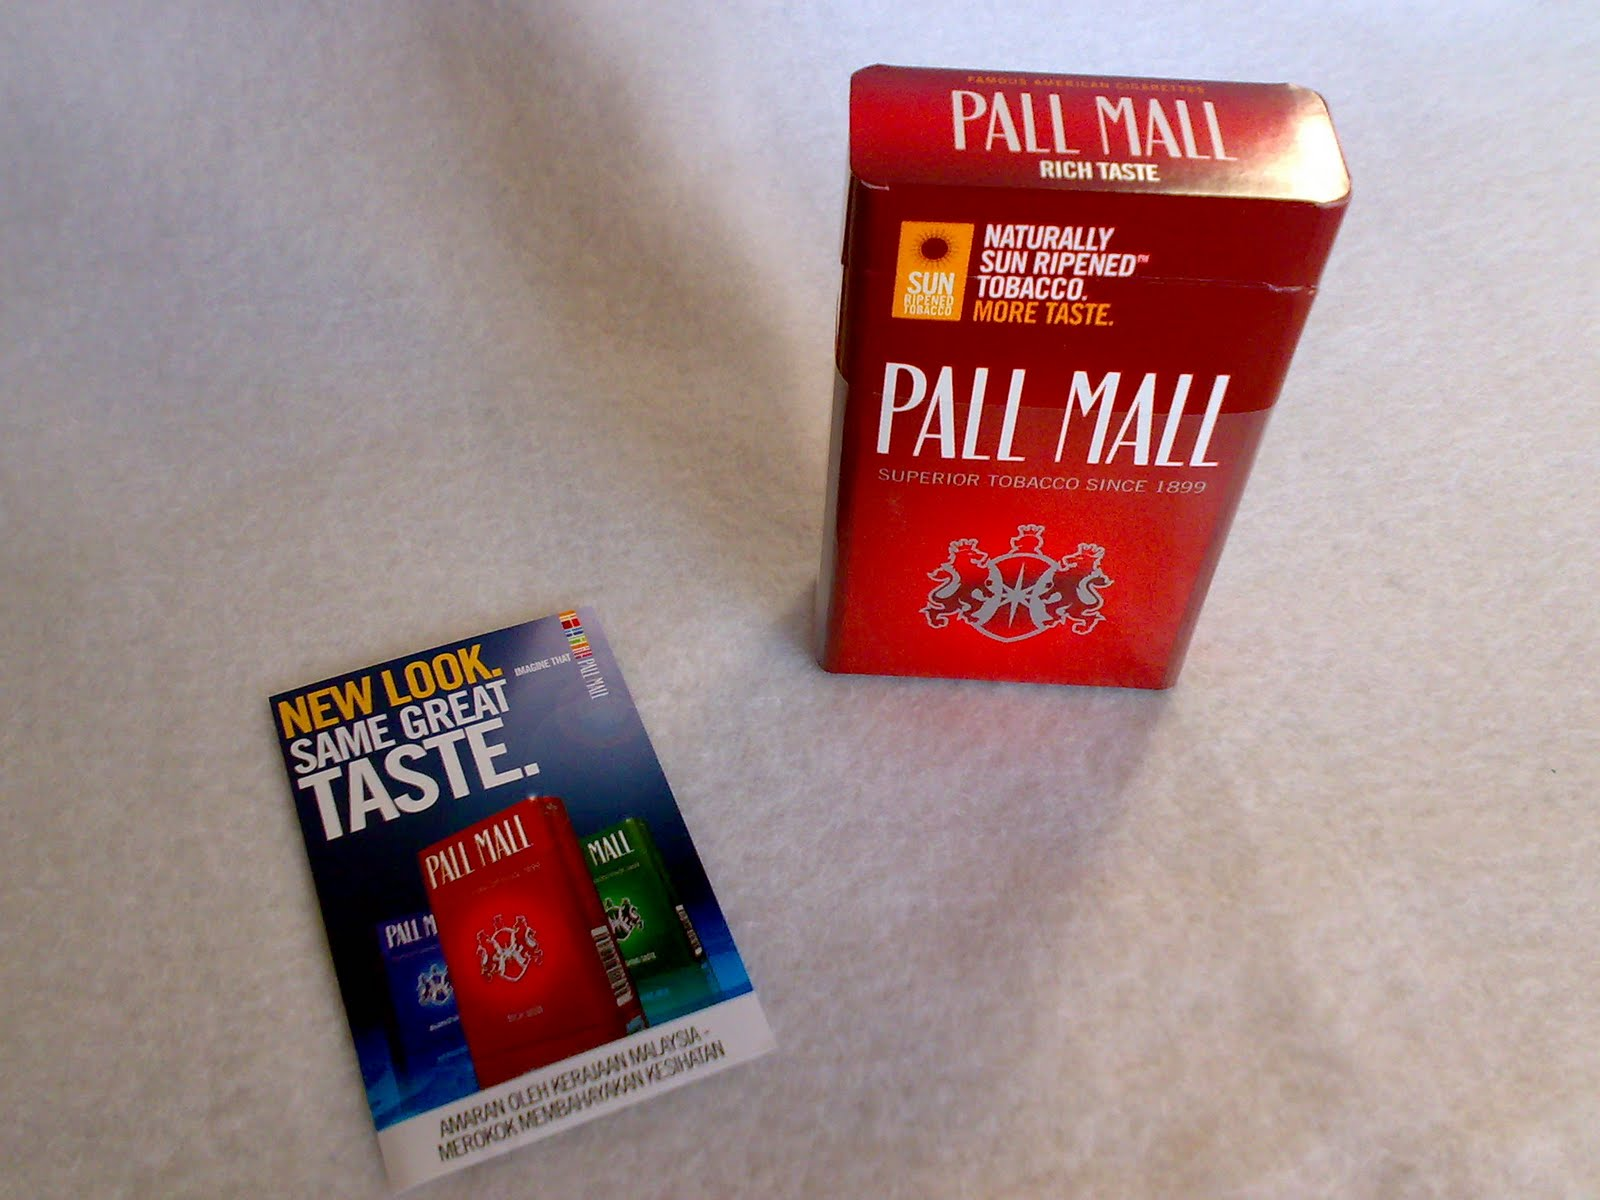 Where can you buy the cigarettes Kool in store